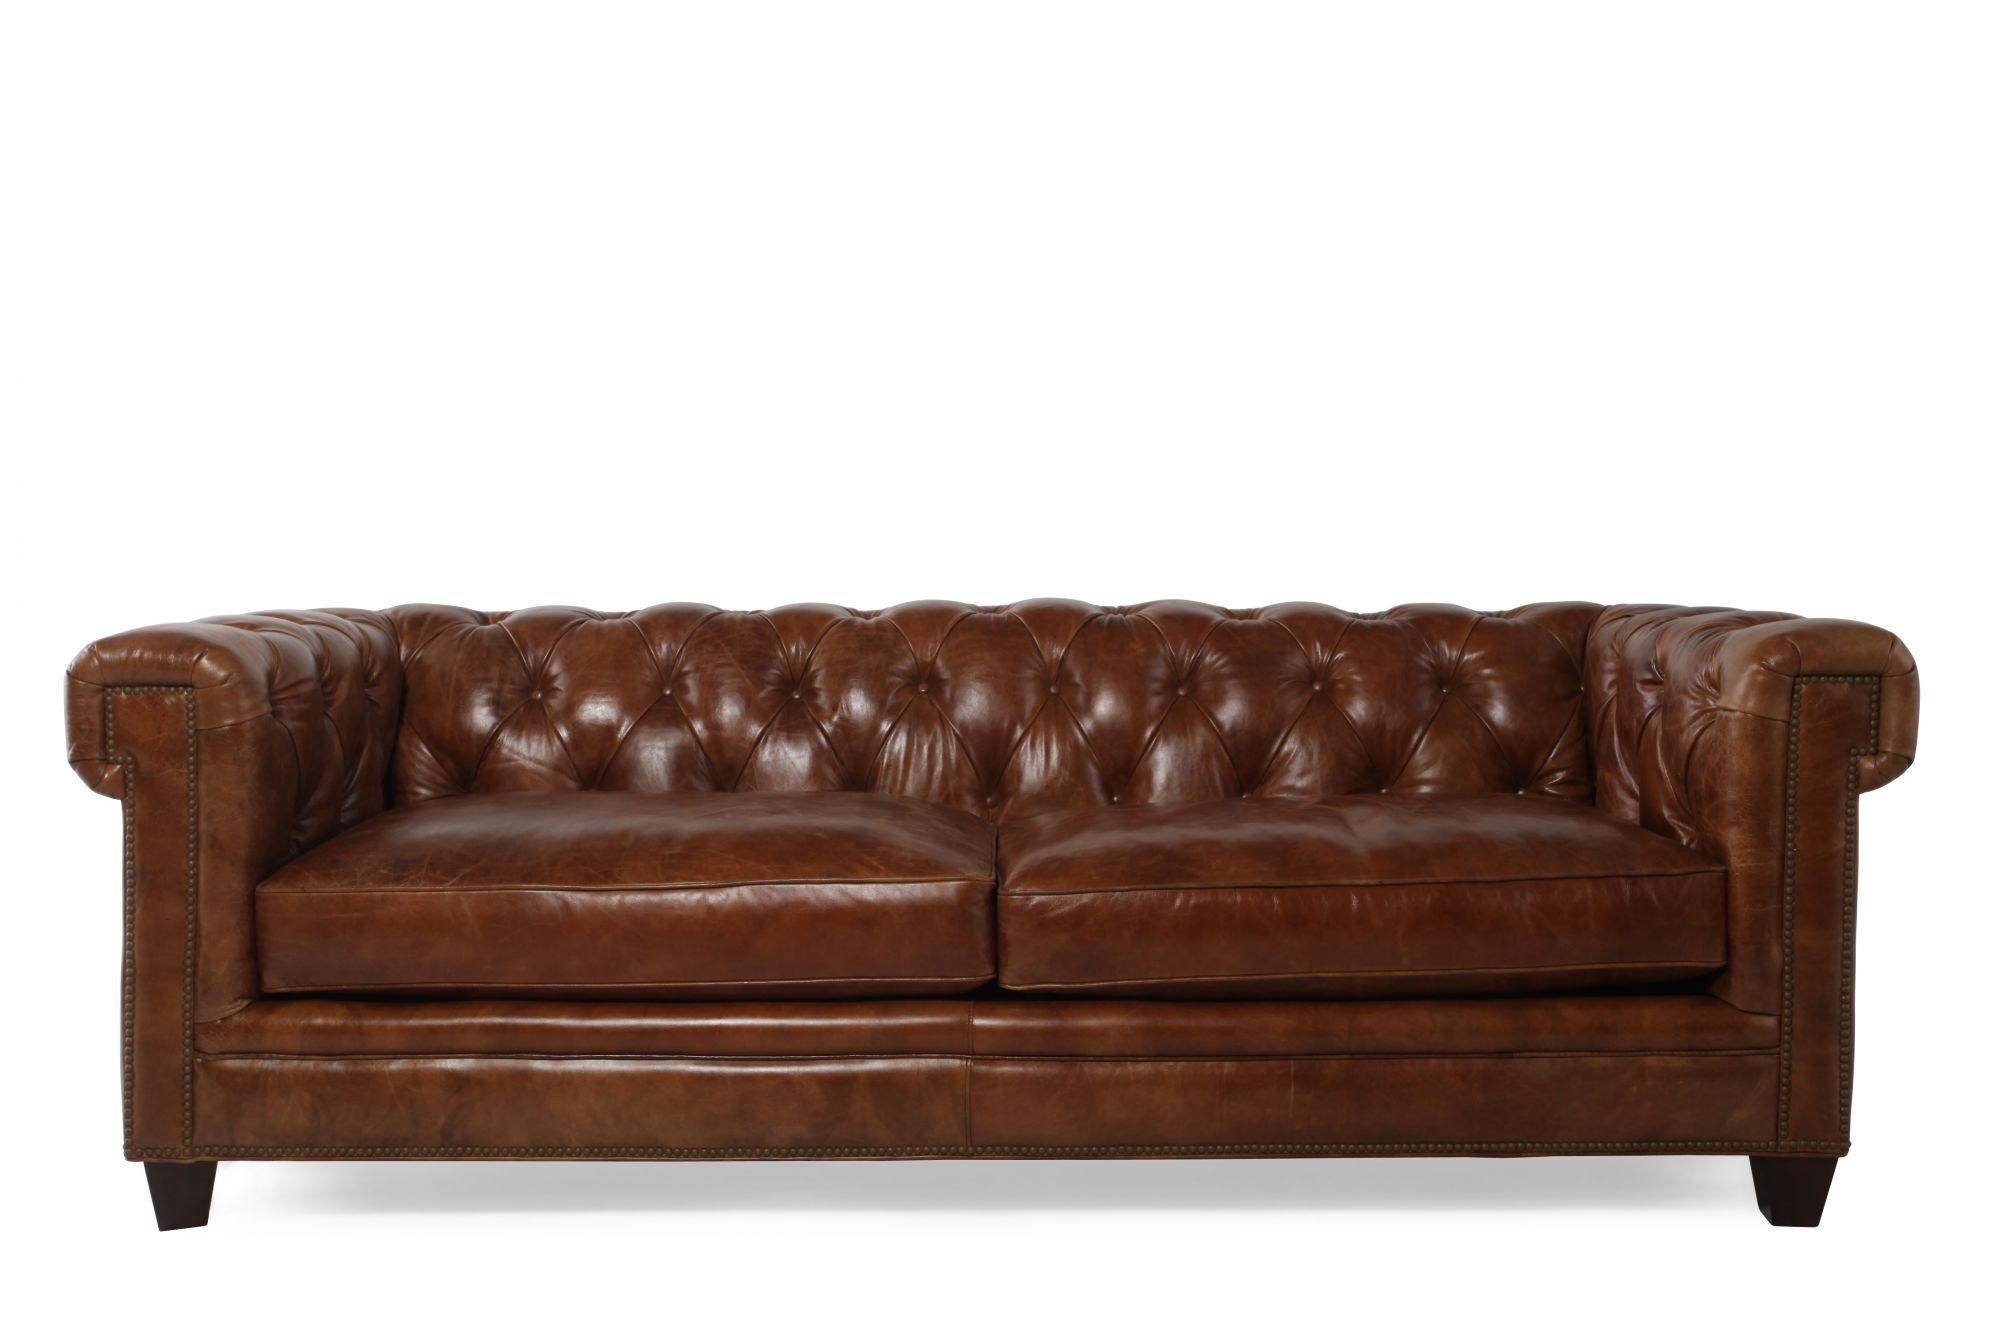 vine brown leather tufted sofa rounded sofas uk button 90 quot in saddle mathis